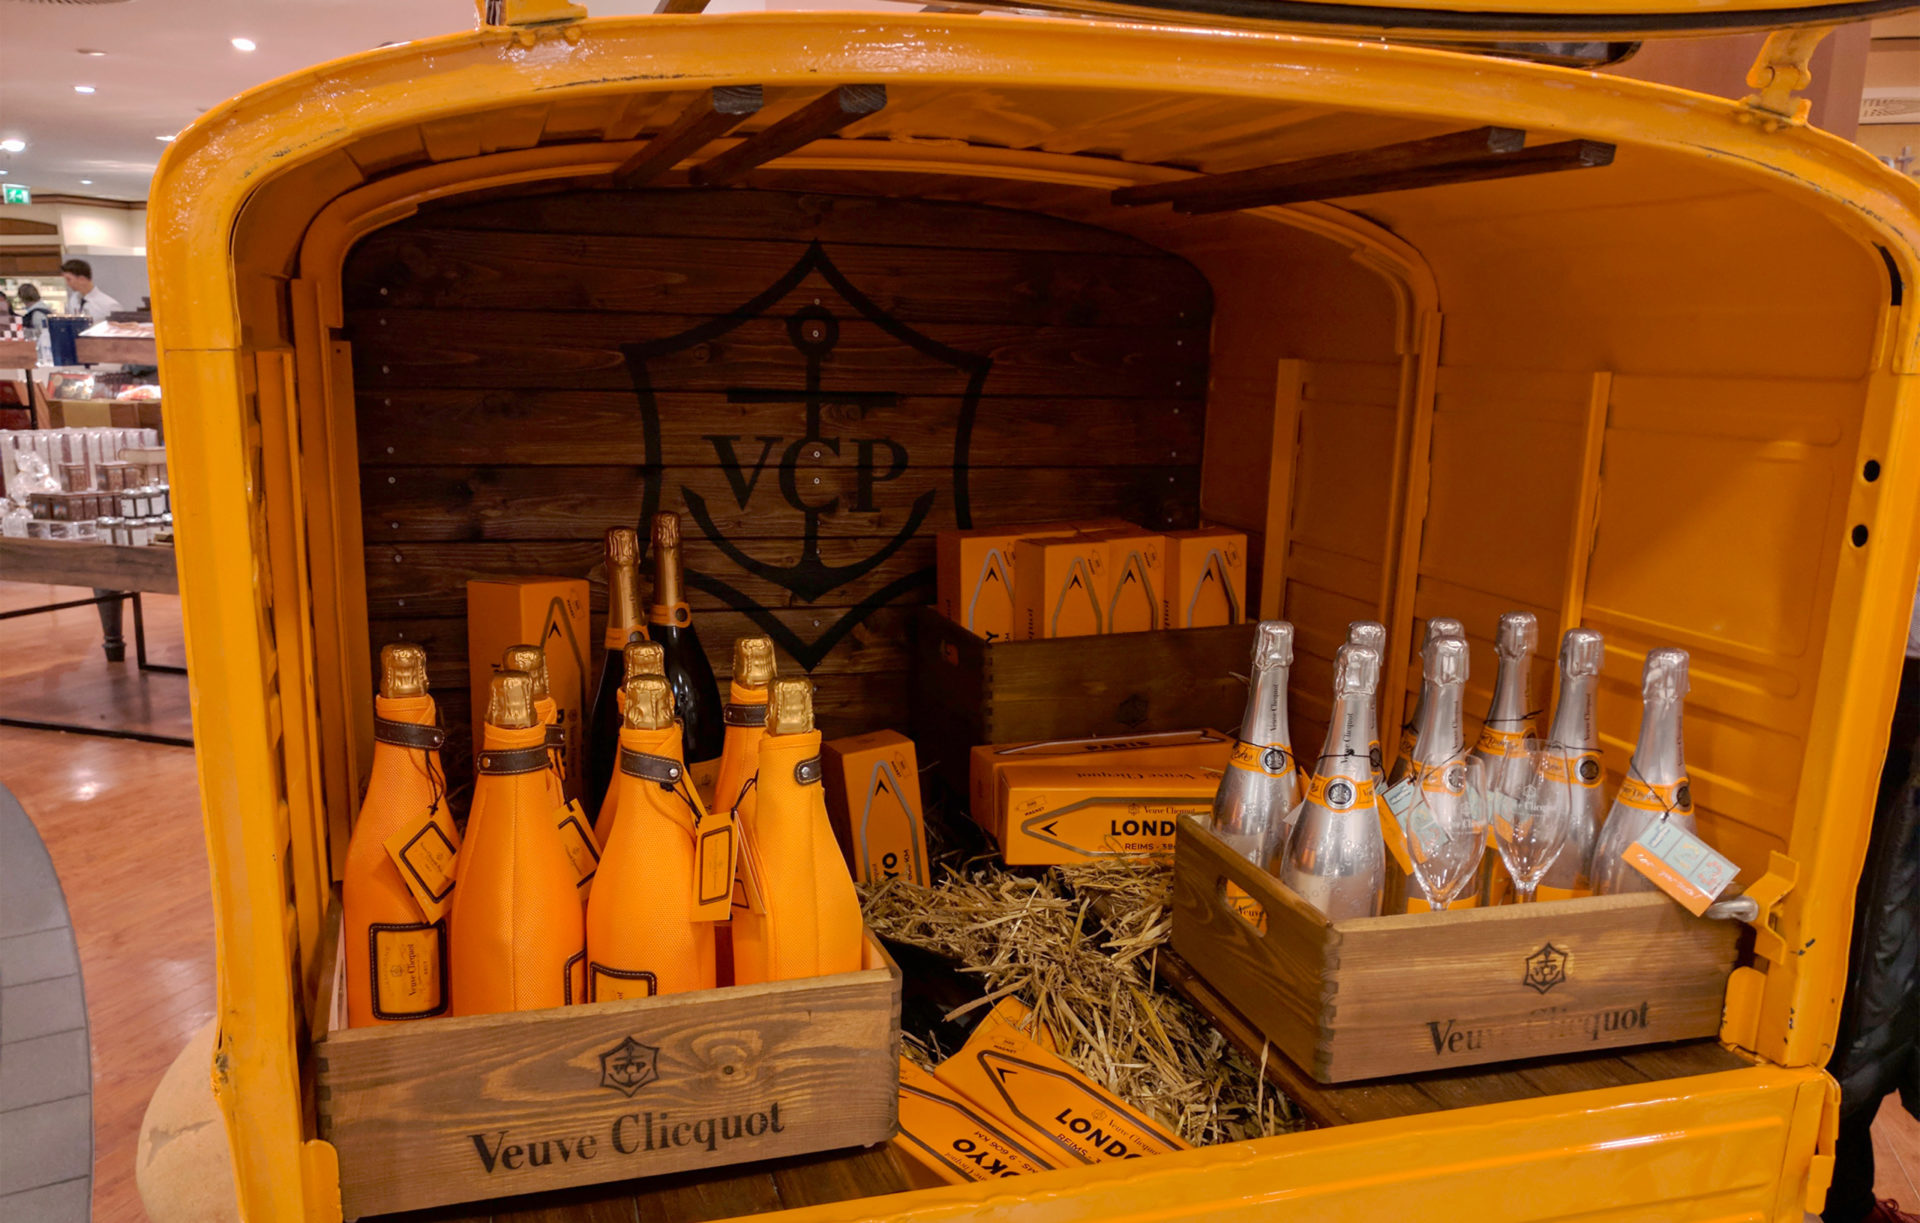 vehicles_Veuve-Clicquot.jpg